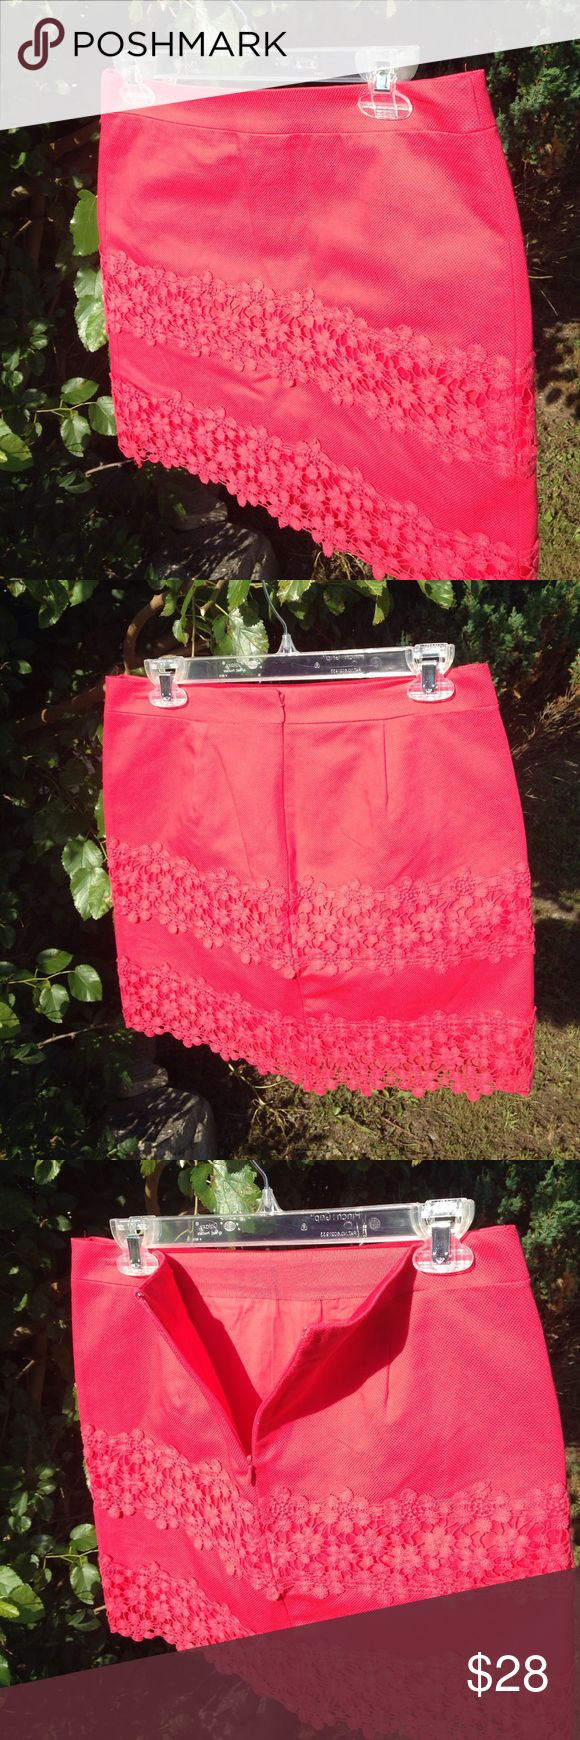 J.Crew lace size 4 watermelon 🍉 zip up mini skirt This size for J.Crew brand miniskirt is in new condition with tags. $98. Zips up the back and has lace detailing. 31 inch waist. 16 inches from the top of the waistline to the bottom of the skirt. Please see photos. Please ask any questions before purchasing. J. Crew Skirts Mini